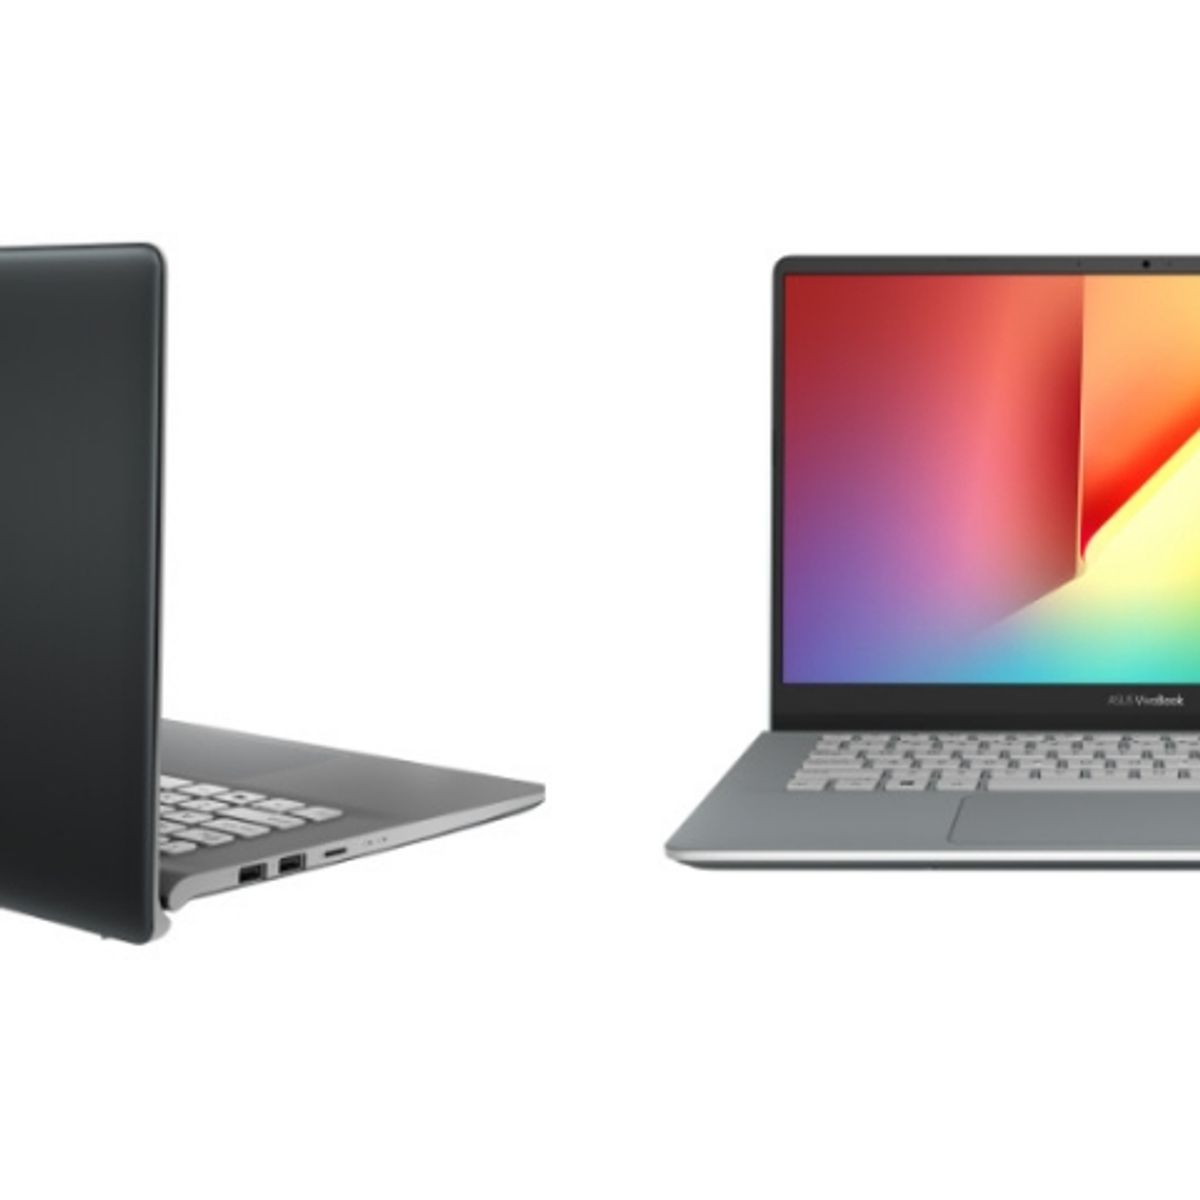 Asus VivoBook S15 (S530) and S14 (S430) up to 8th Gen Intel